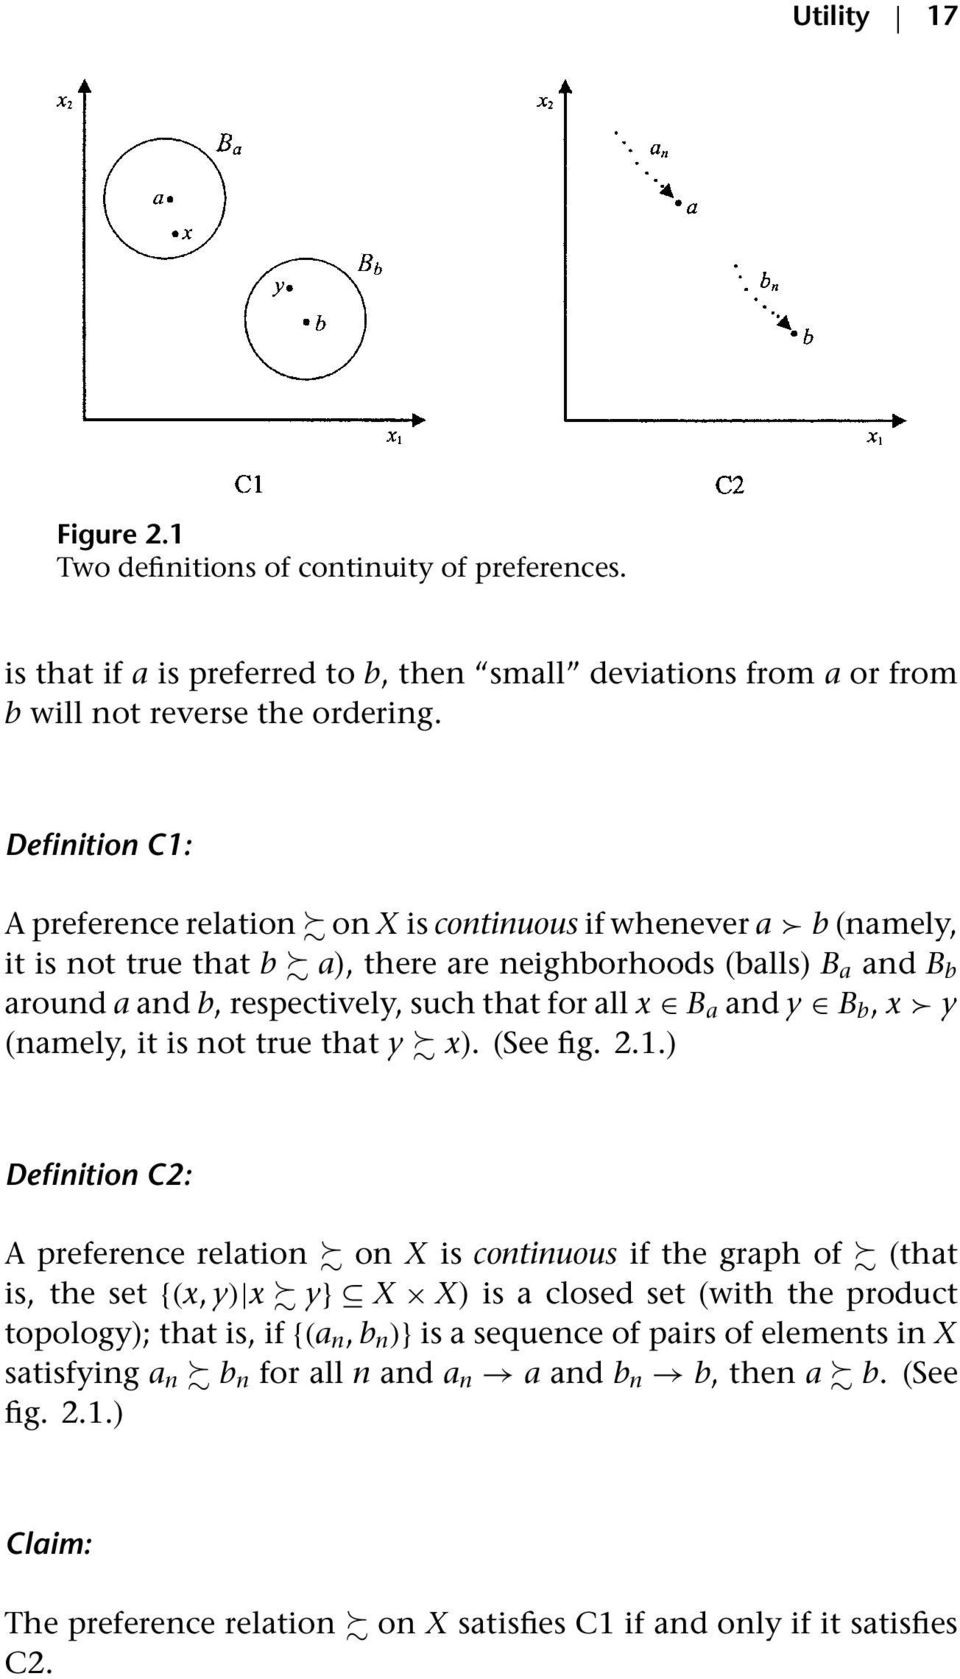 Definition C1: A preference relation on X is continuous if whenever a b (namely, it is not true that b a), there are neighborhoods (balls) B a and B b around a and b, respectively, such that for all